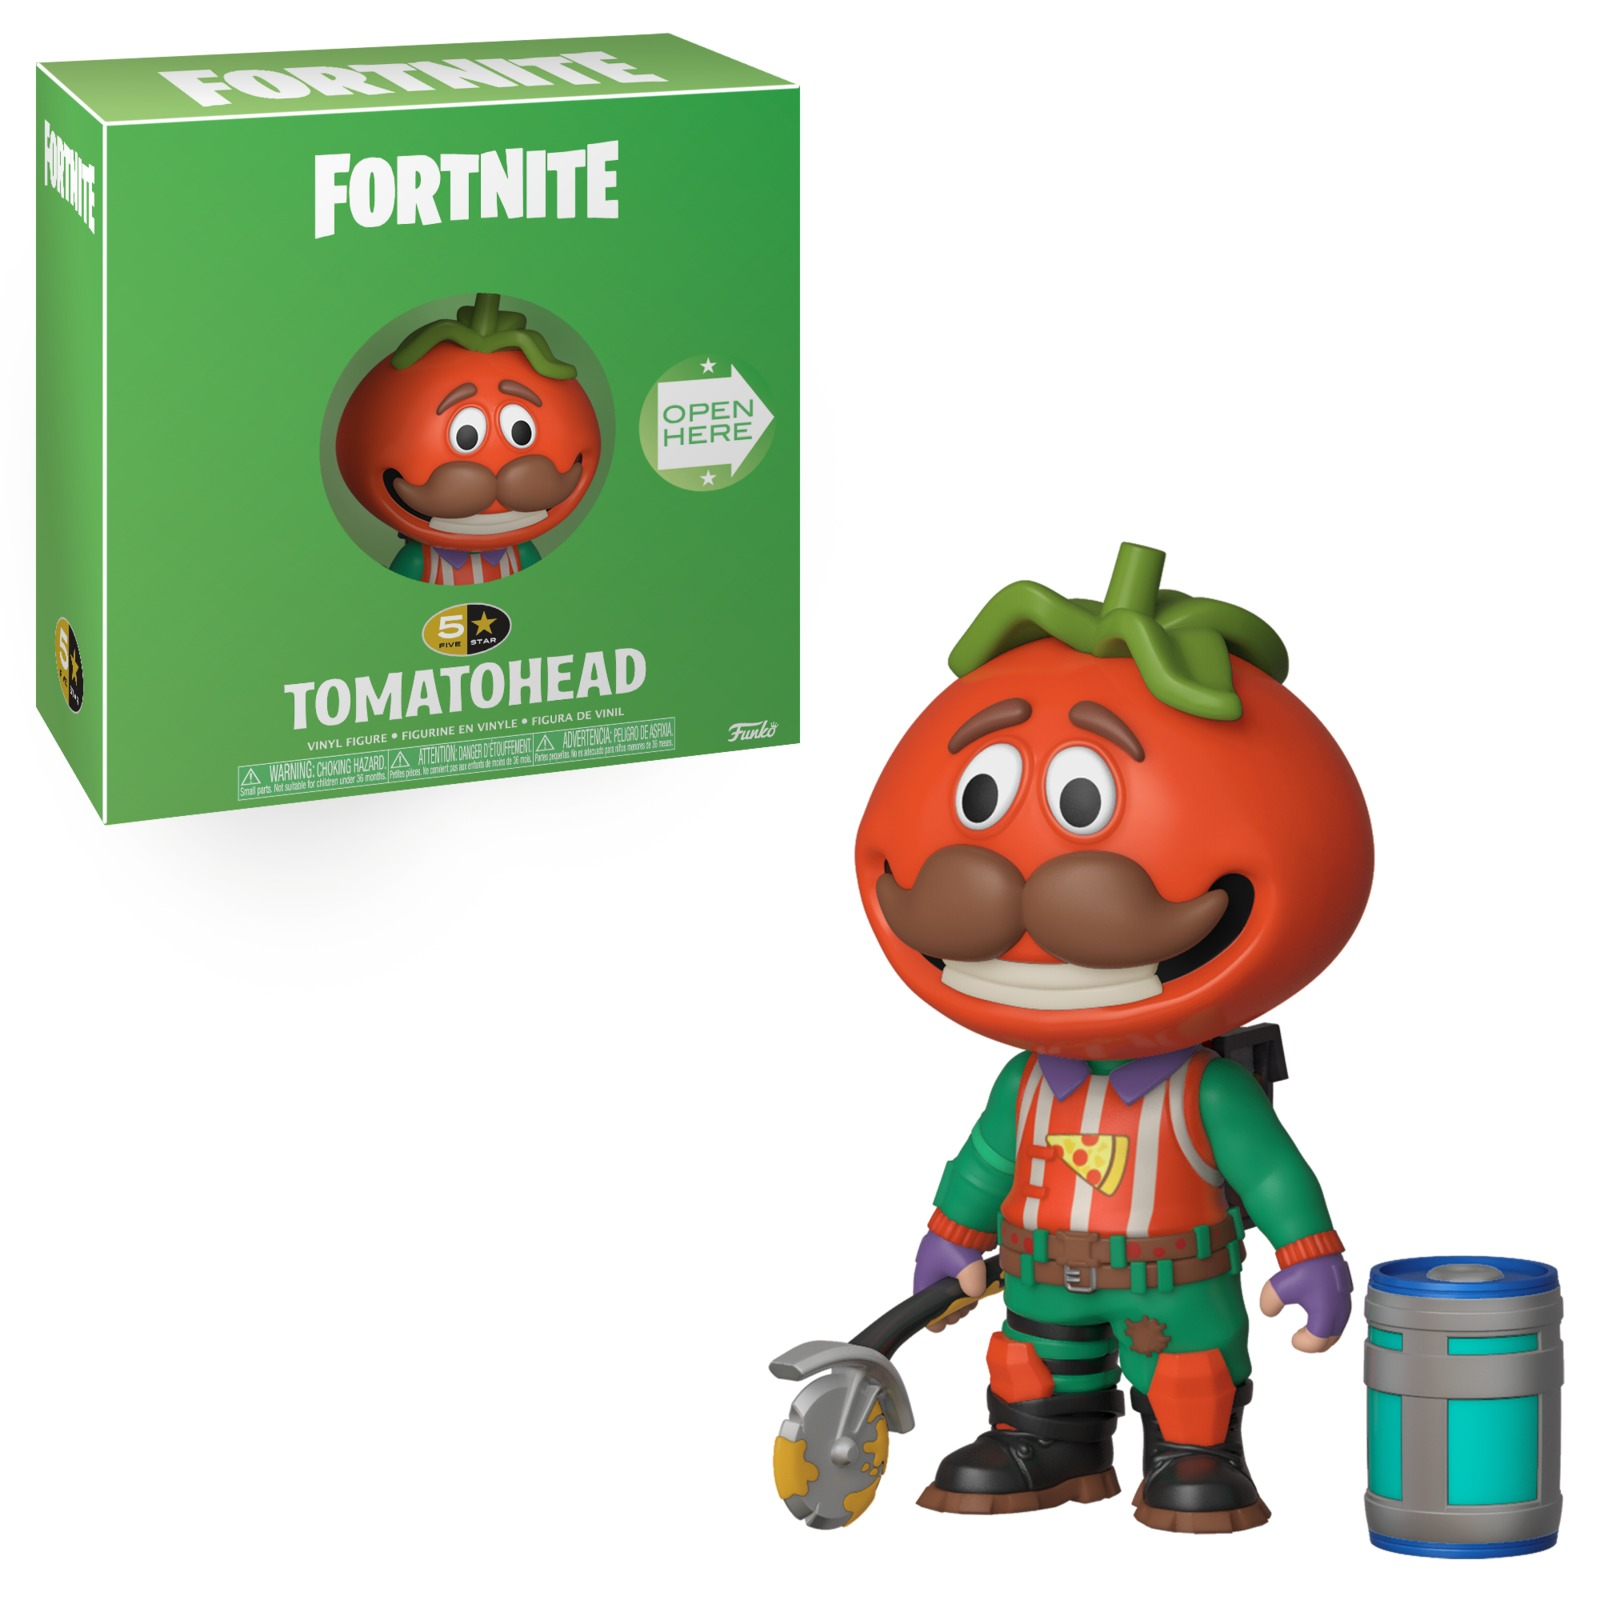 Fortnite: Tomatohead - 5-Star Vinyl Figure image